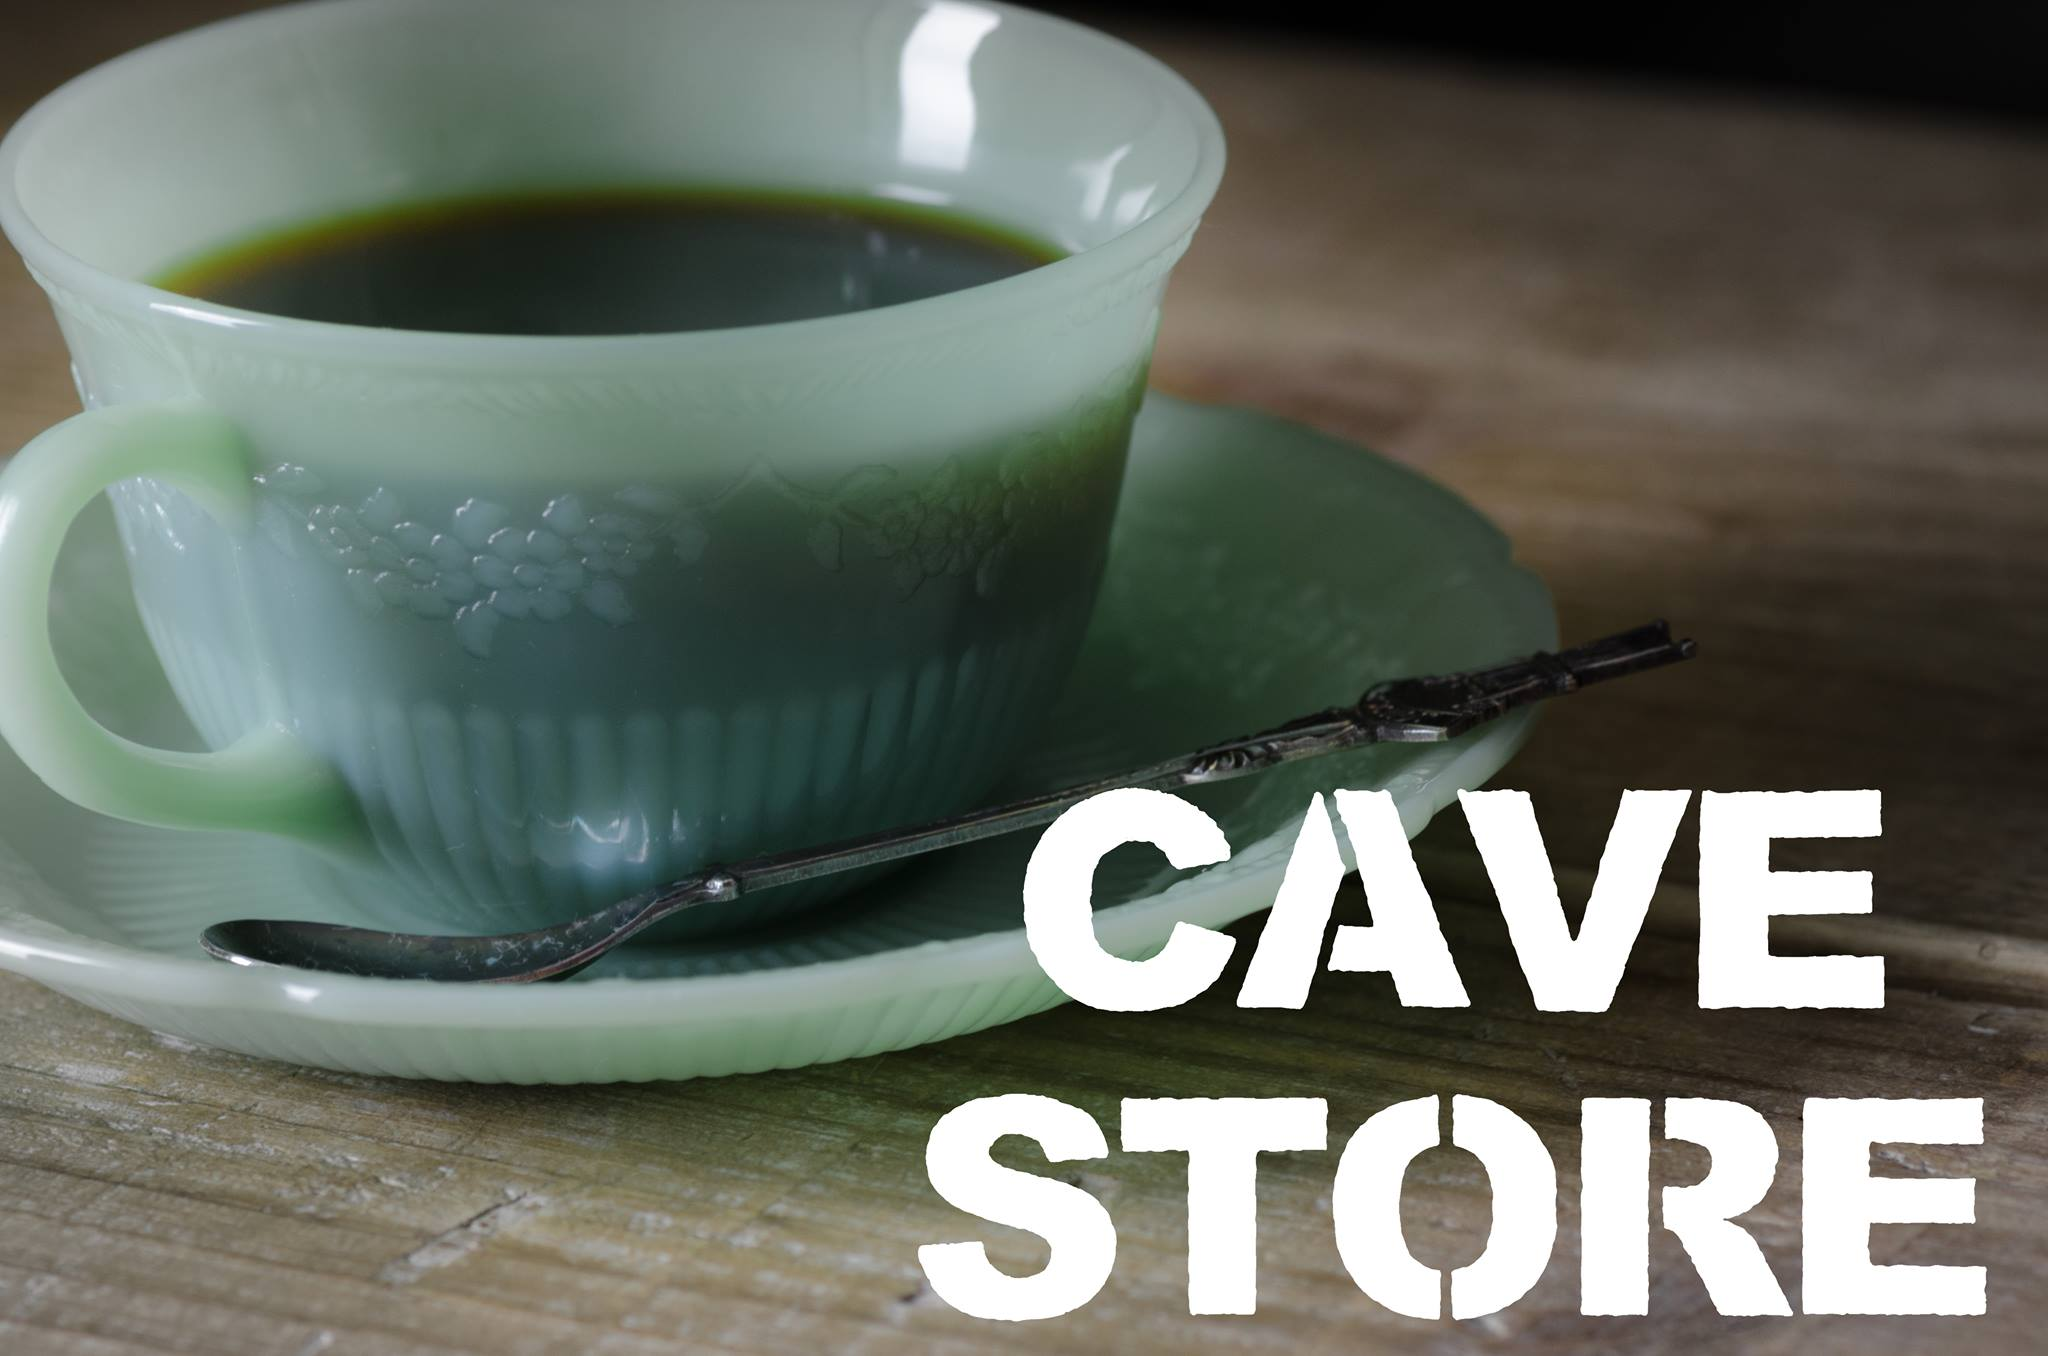 CAVE STORE